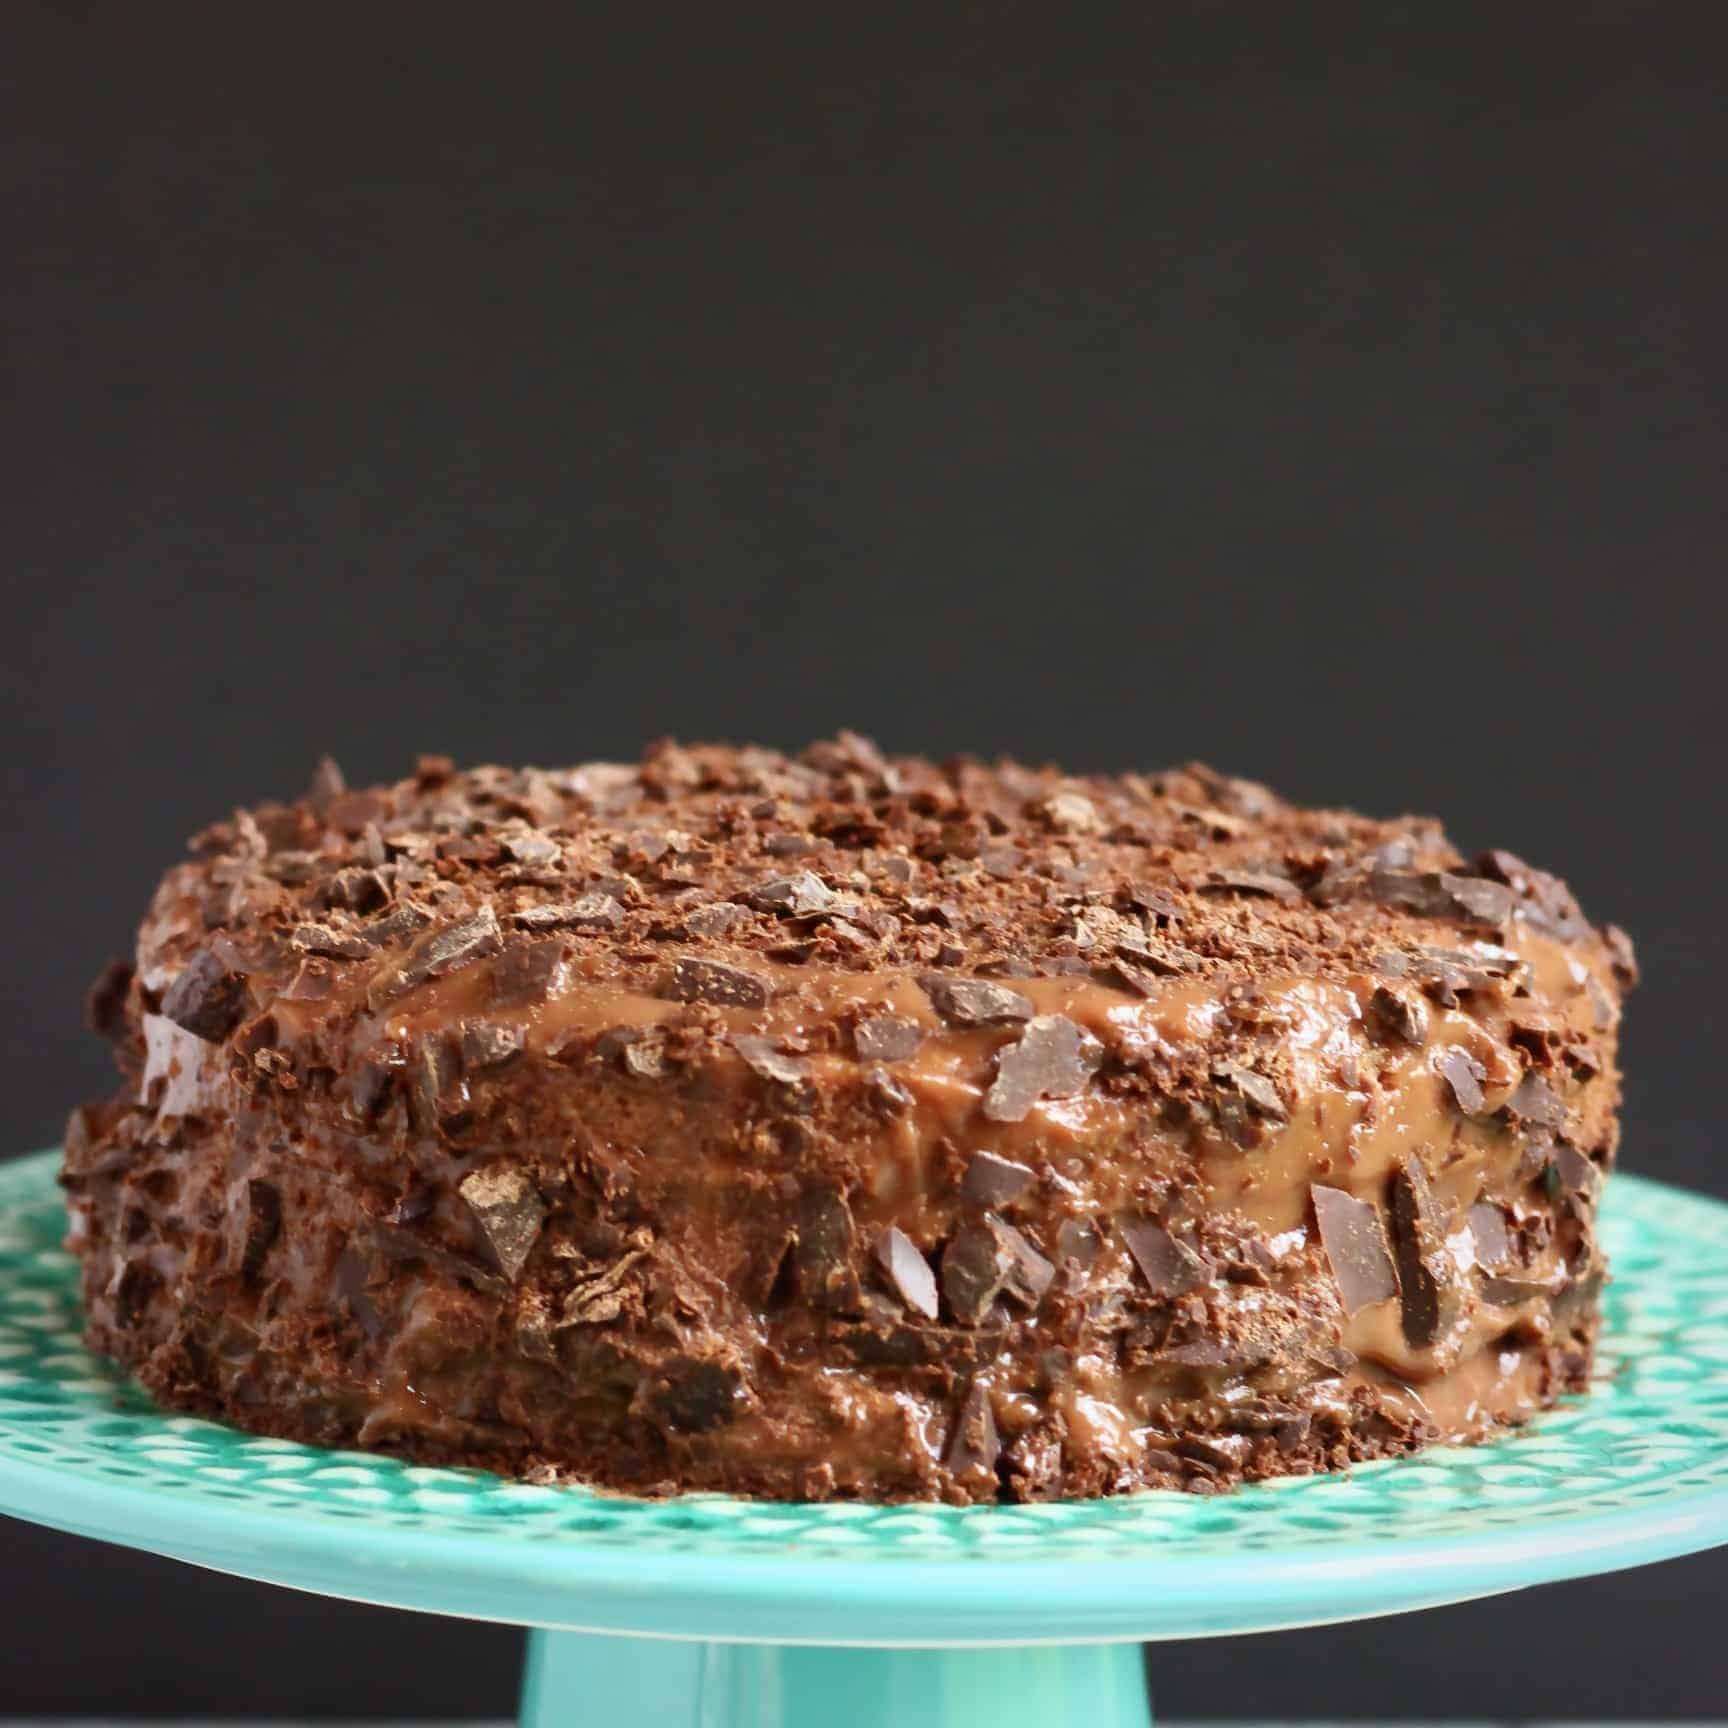 Gluten-Free Vegan Brooklyn Blackout Chocolate Cake